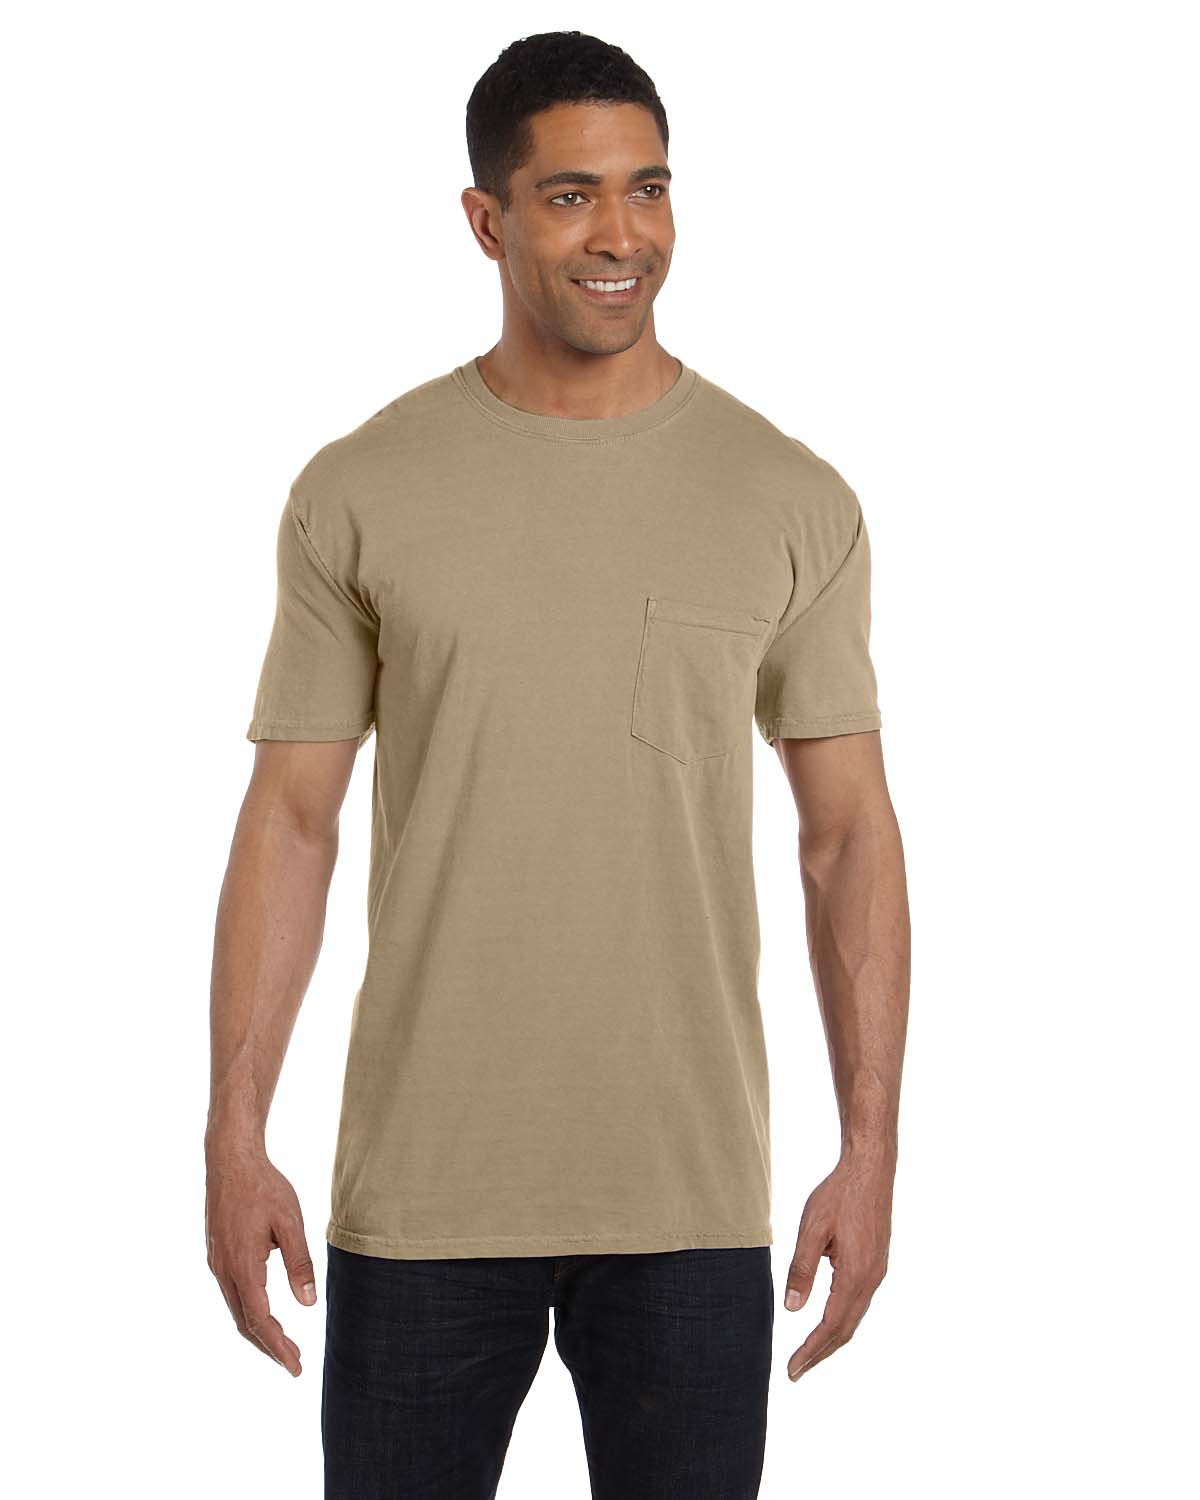 comforter shirts shirt t sanibel comfort in tshirt product to paradise adventure color colors adventures outfitters